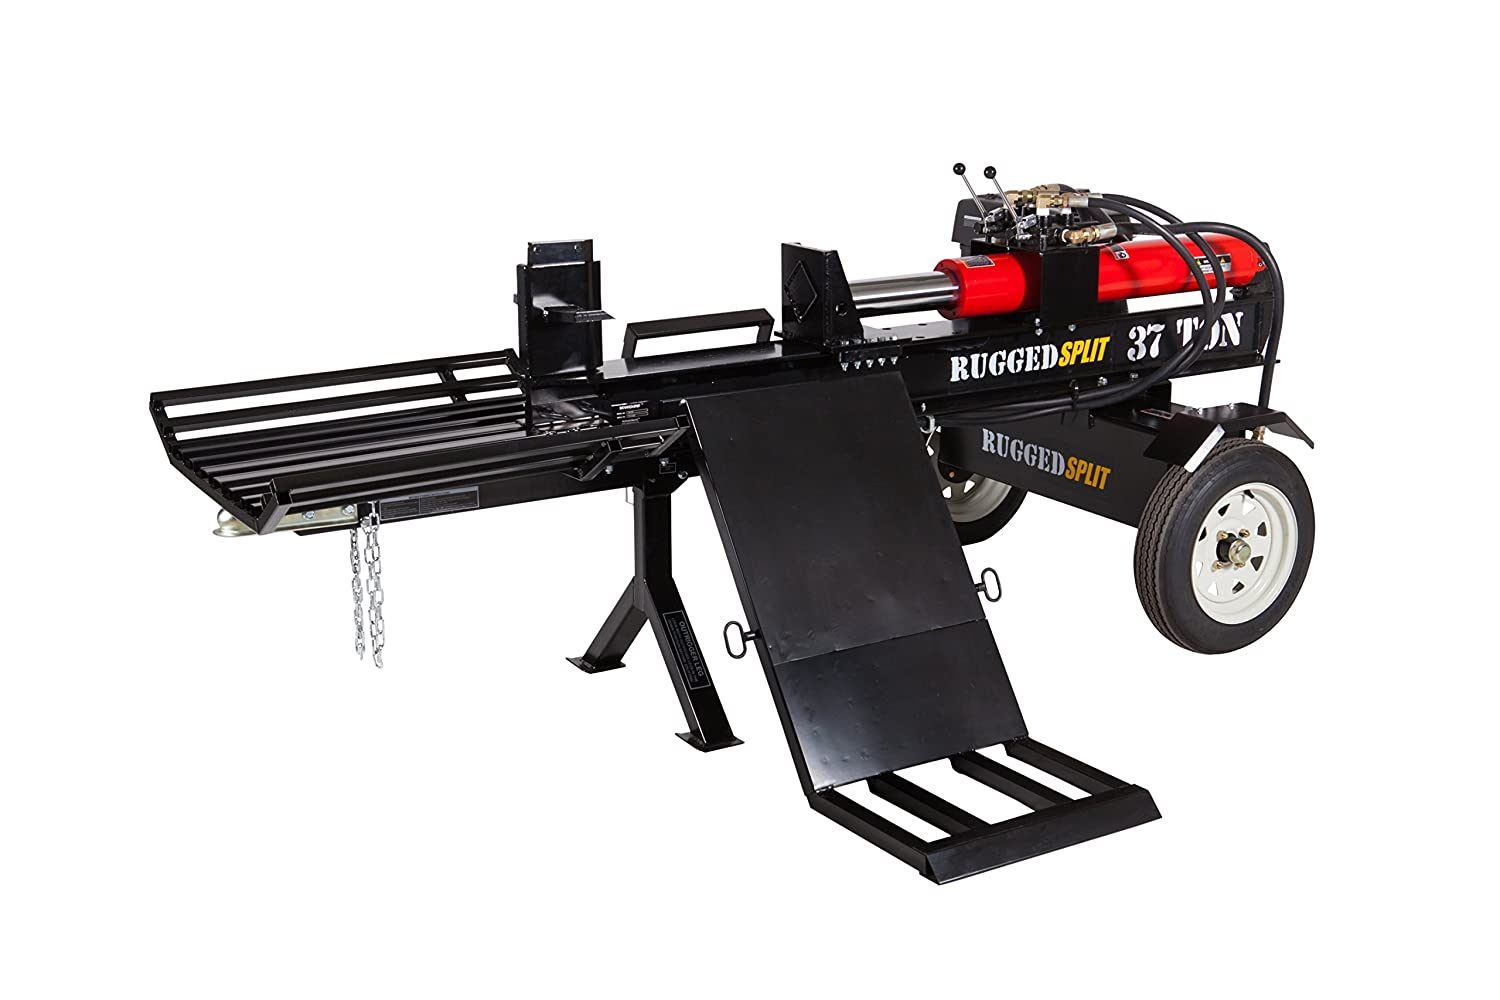 best log splitter -  37-Ton Horizontal Gas Log Splitter, 420cc 15hp Engine Electric Start w/ Log Lift & Catcher